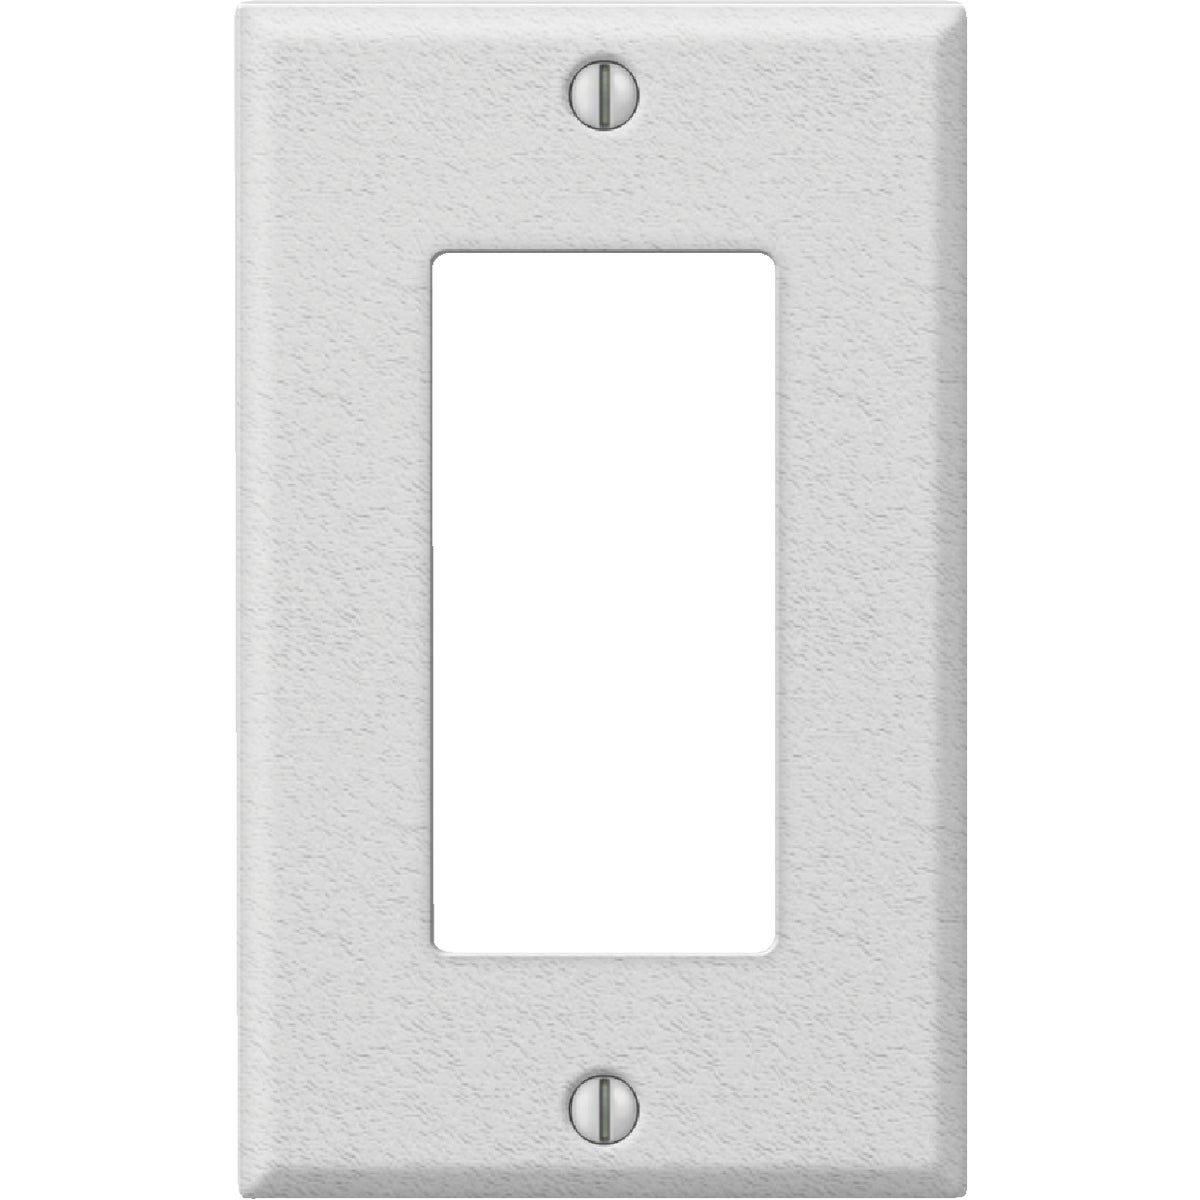 WHT ROCKER WALL PLATE